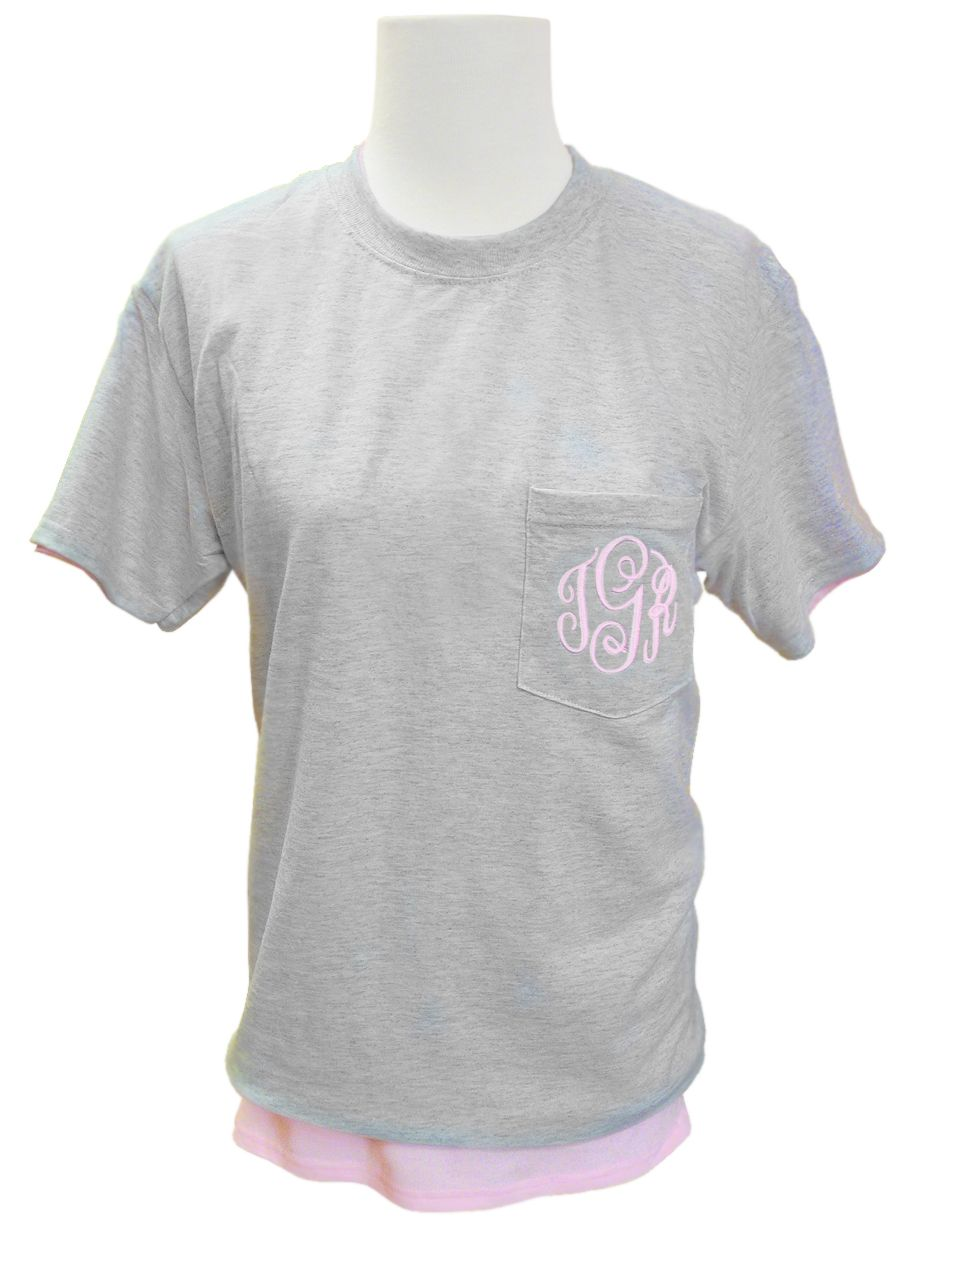 Monogrammed Pocket Tshirt Design Your Own Pocket Tee With Us